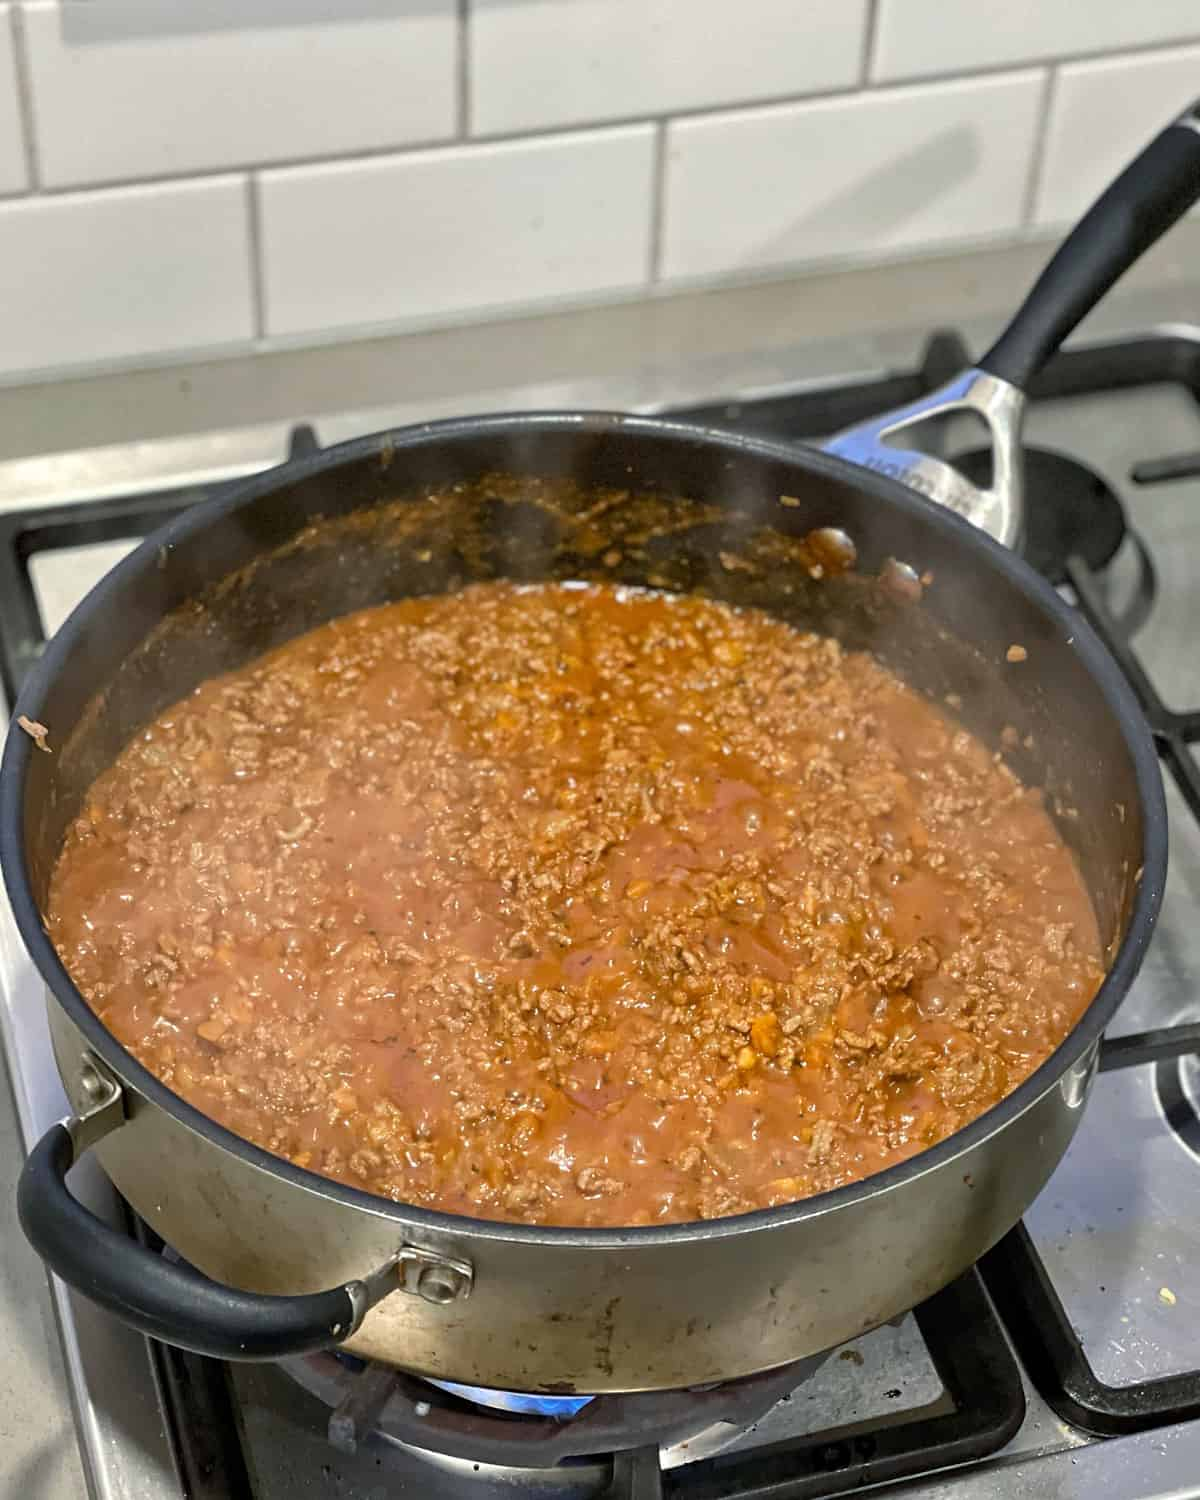 cooked bolognese in a pan.